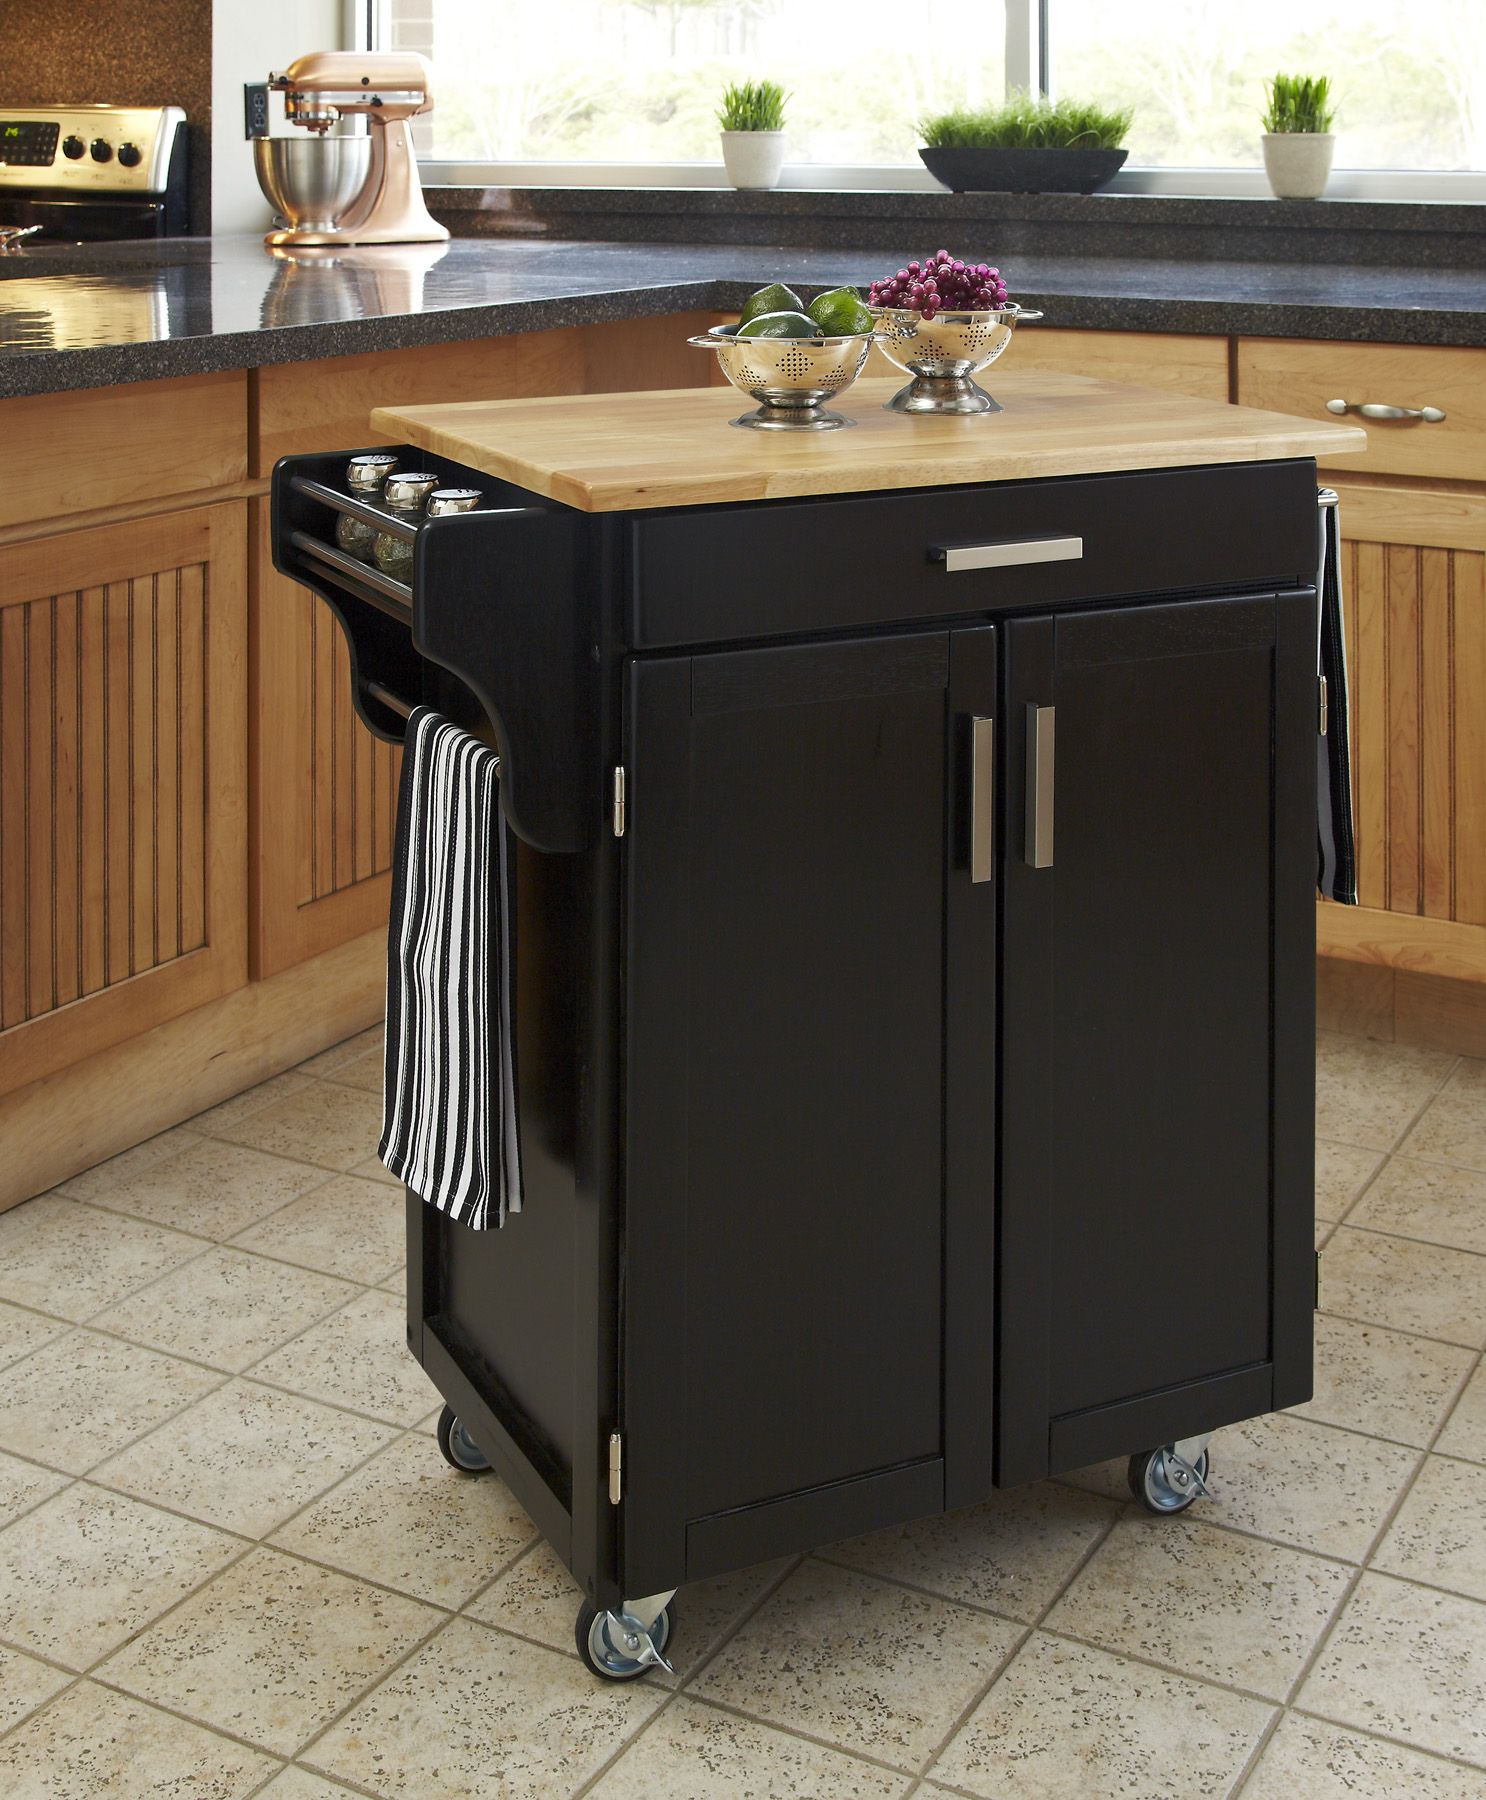 Home Styles Create-A-Cart Cuisine Cart - Black Finish with Wood Top